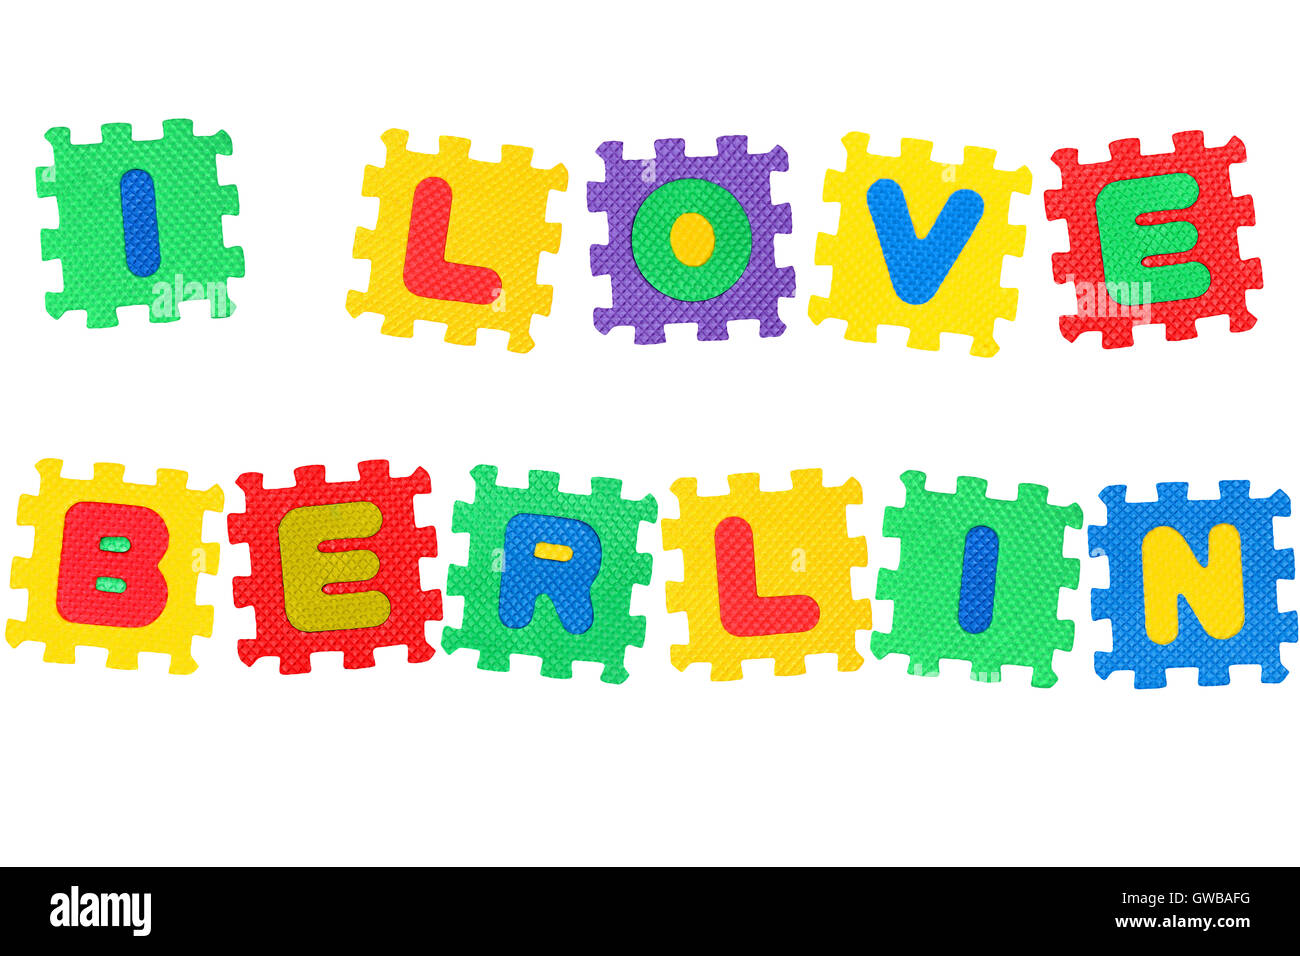 Berlin Puzzle Message I Love Berlin From Letters Puzzle Isolated On White